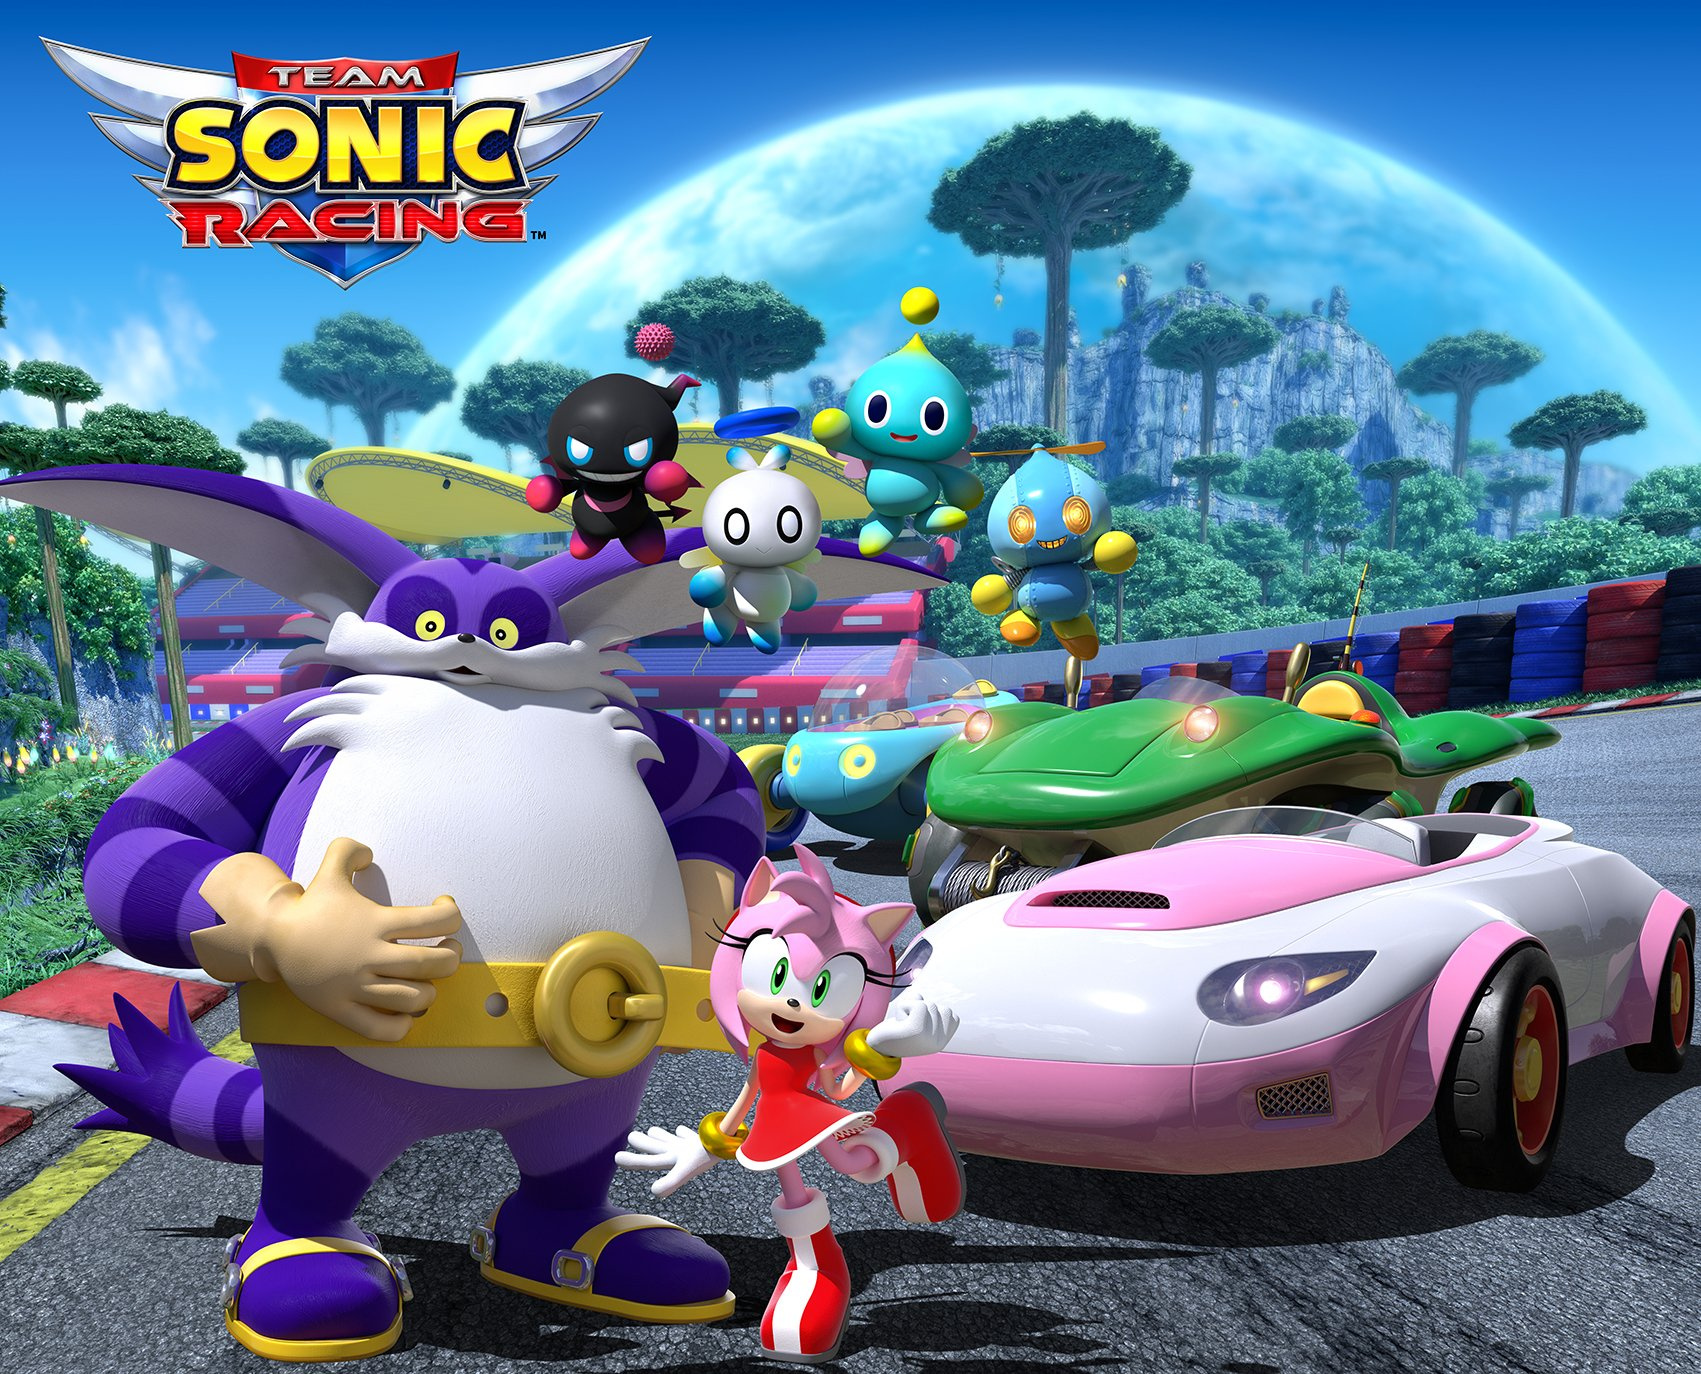 Big the Cat, Amy Rose, and Chao Join Team Sonic Racing